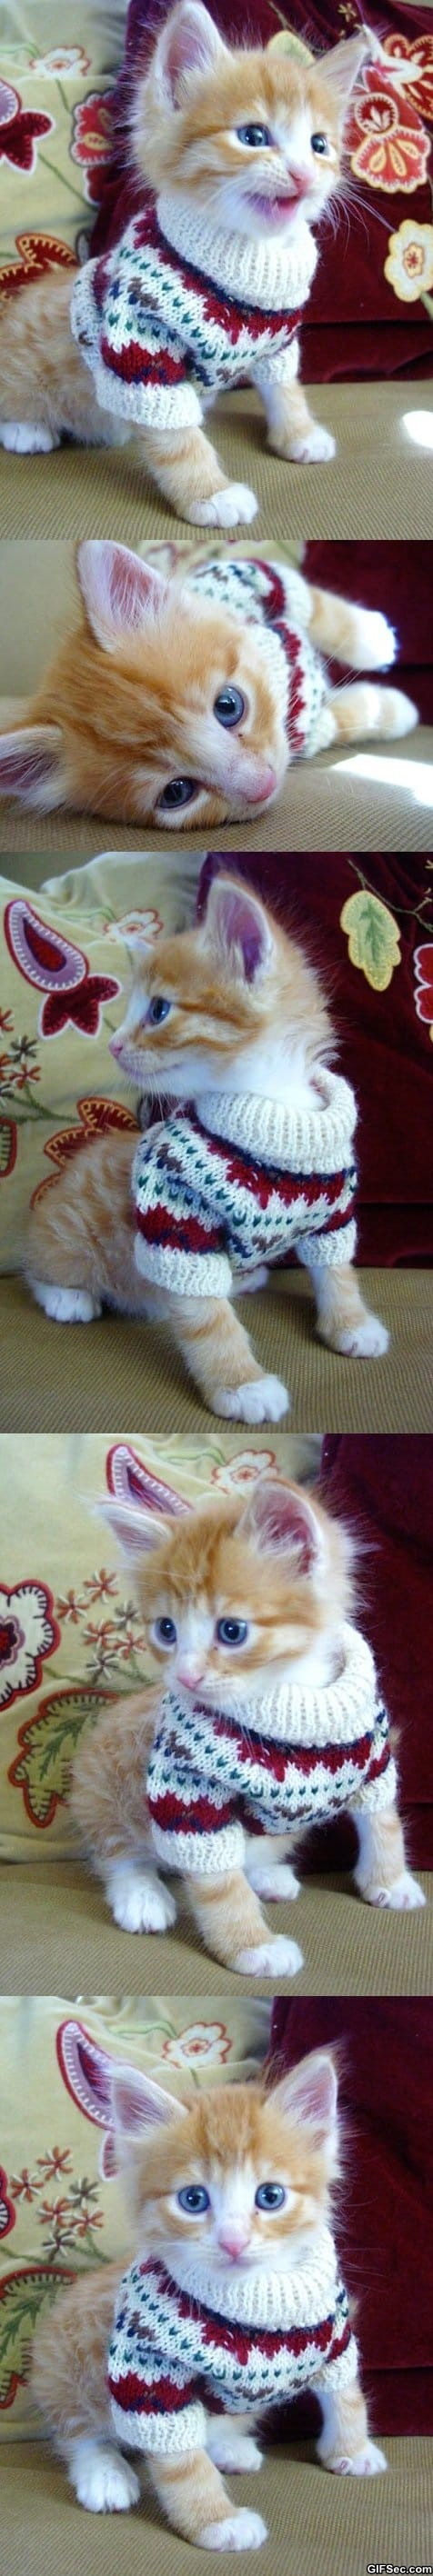 cat-in-a-sweater